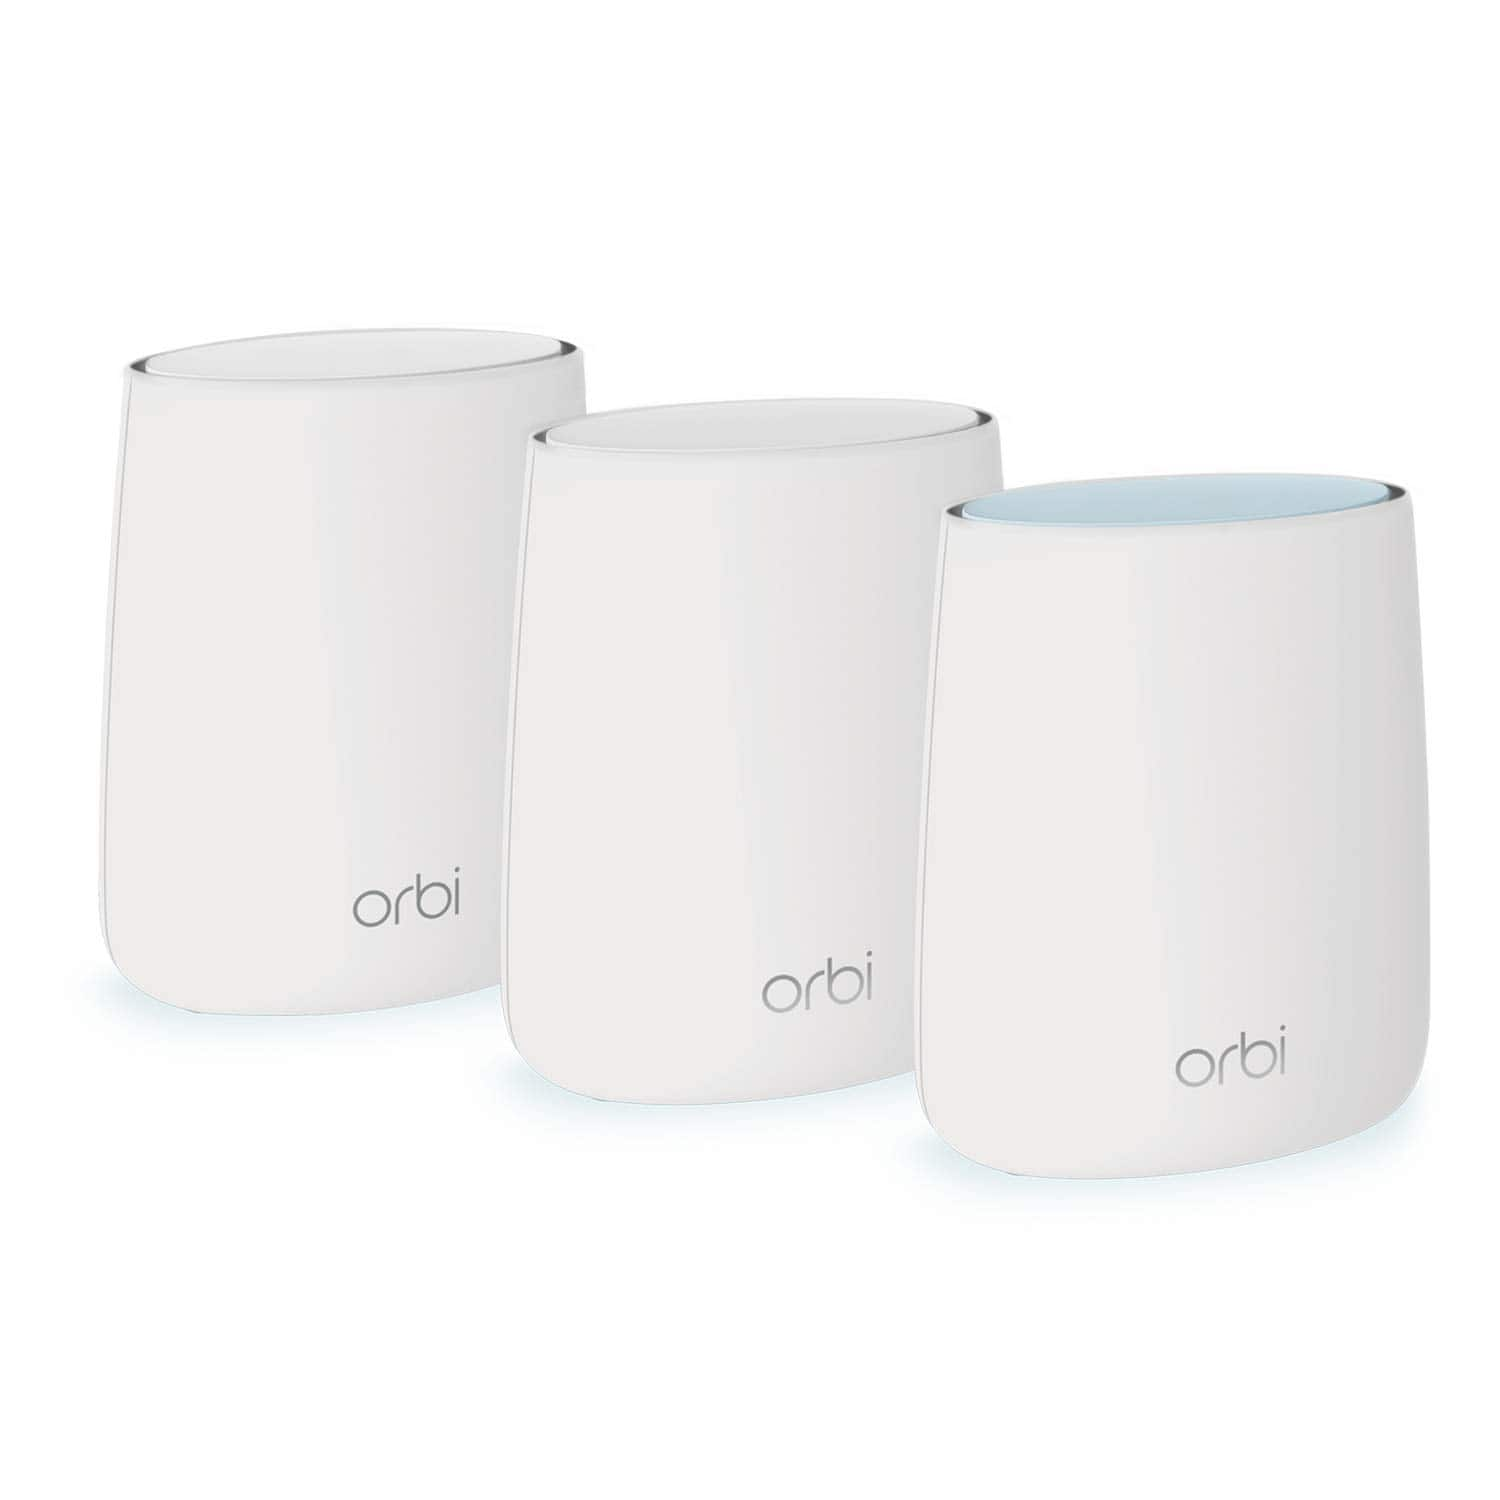 NETGEAR Orbi Whole Home Mesh WiFi System - WiFi router and 2